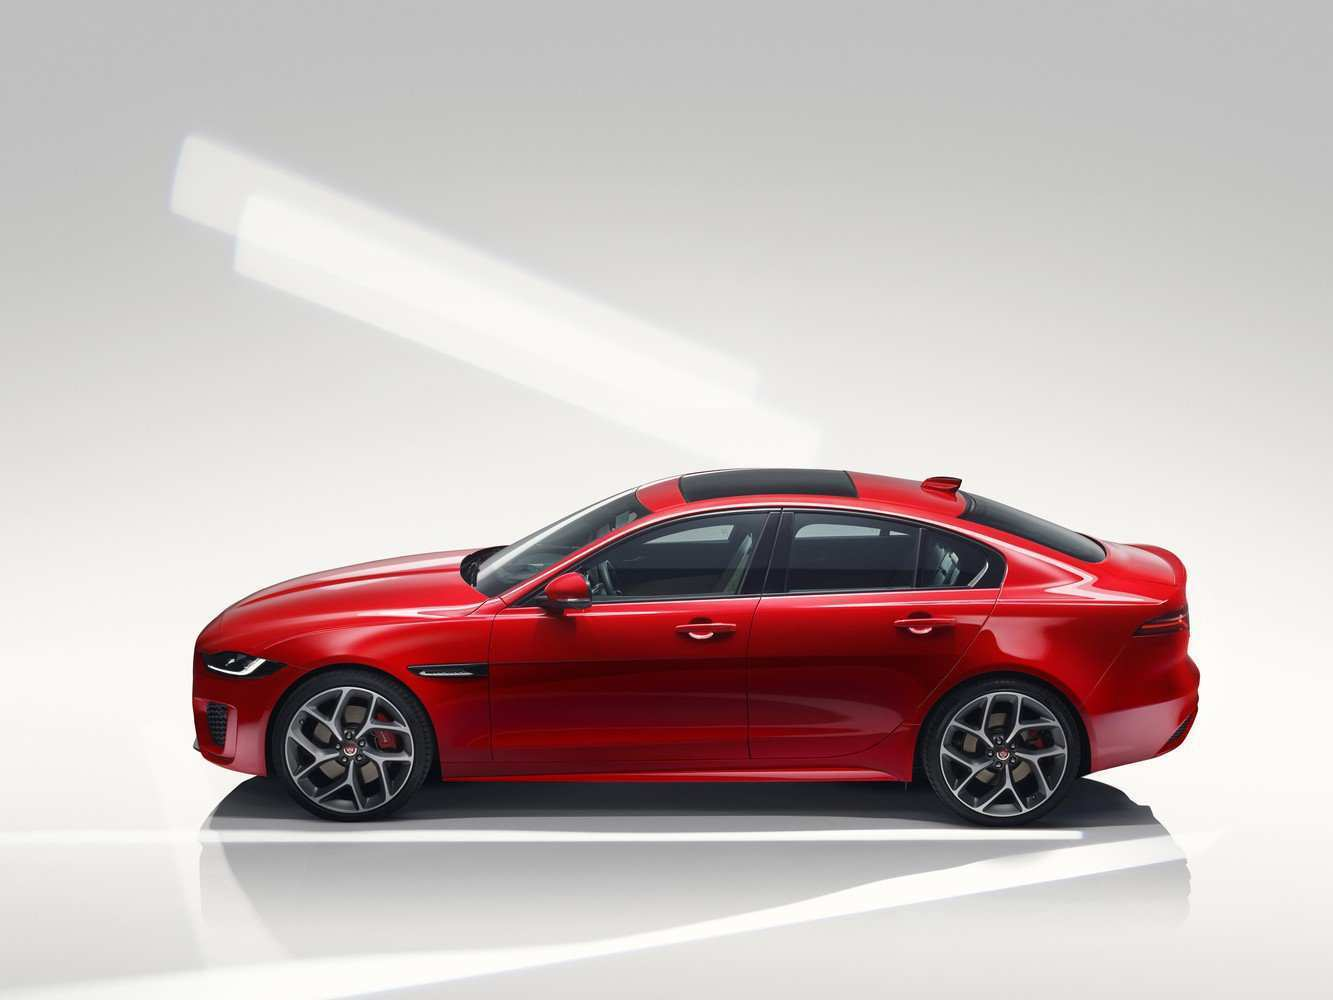 27 A Jaguar Xe 2019 Model